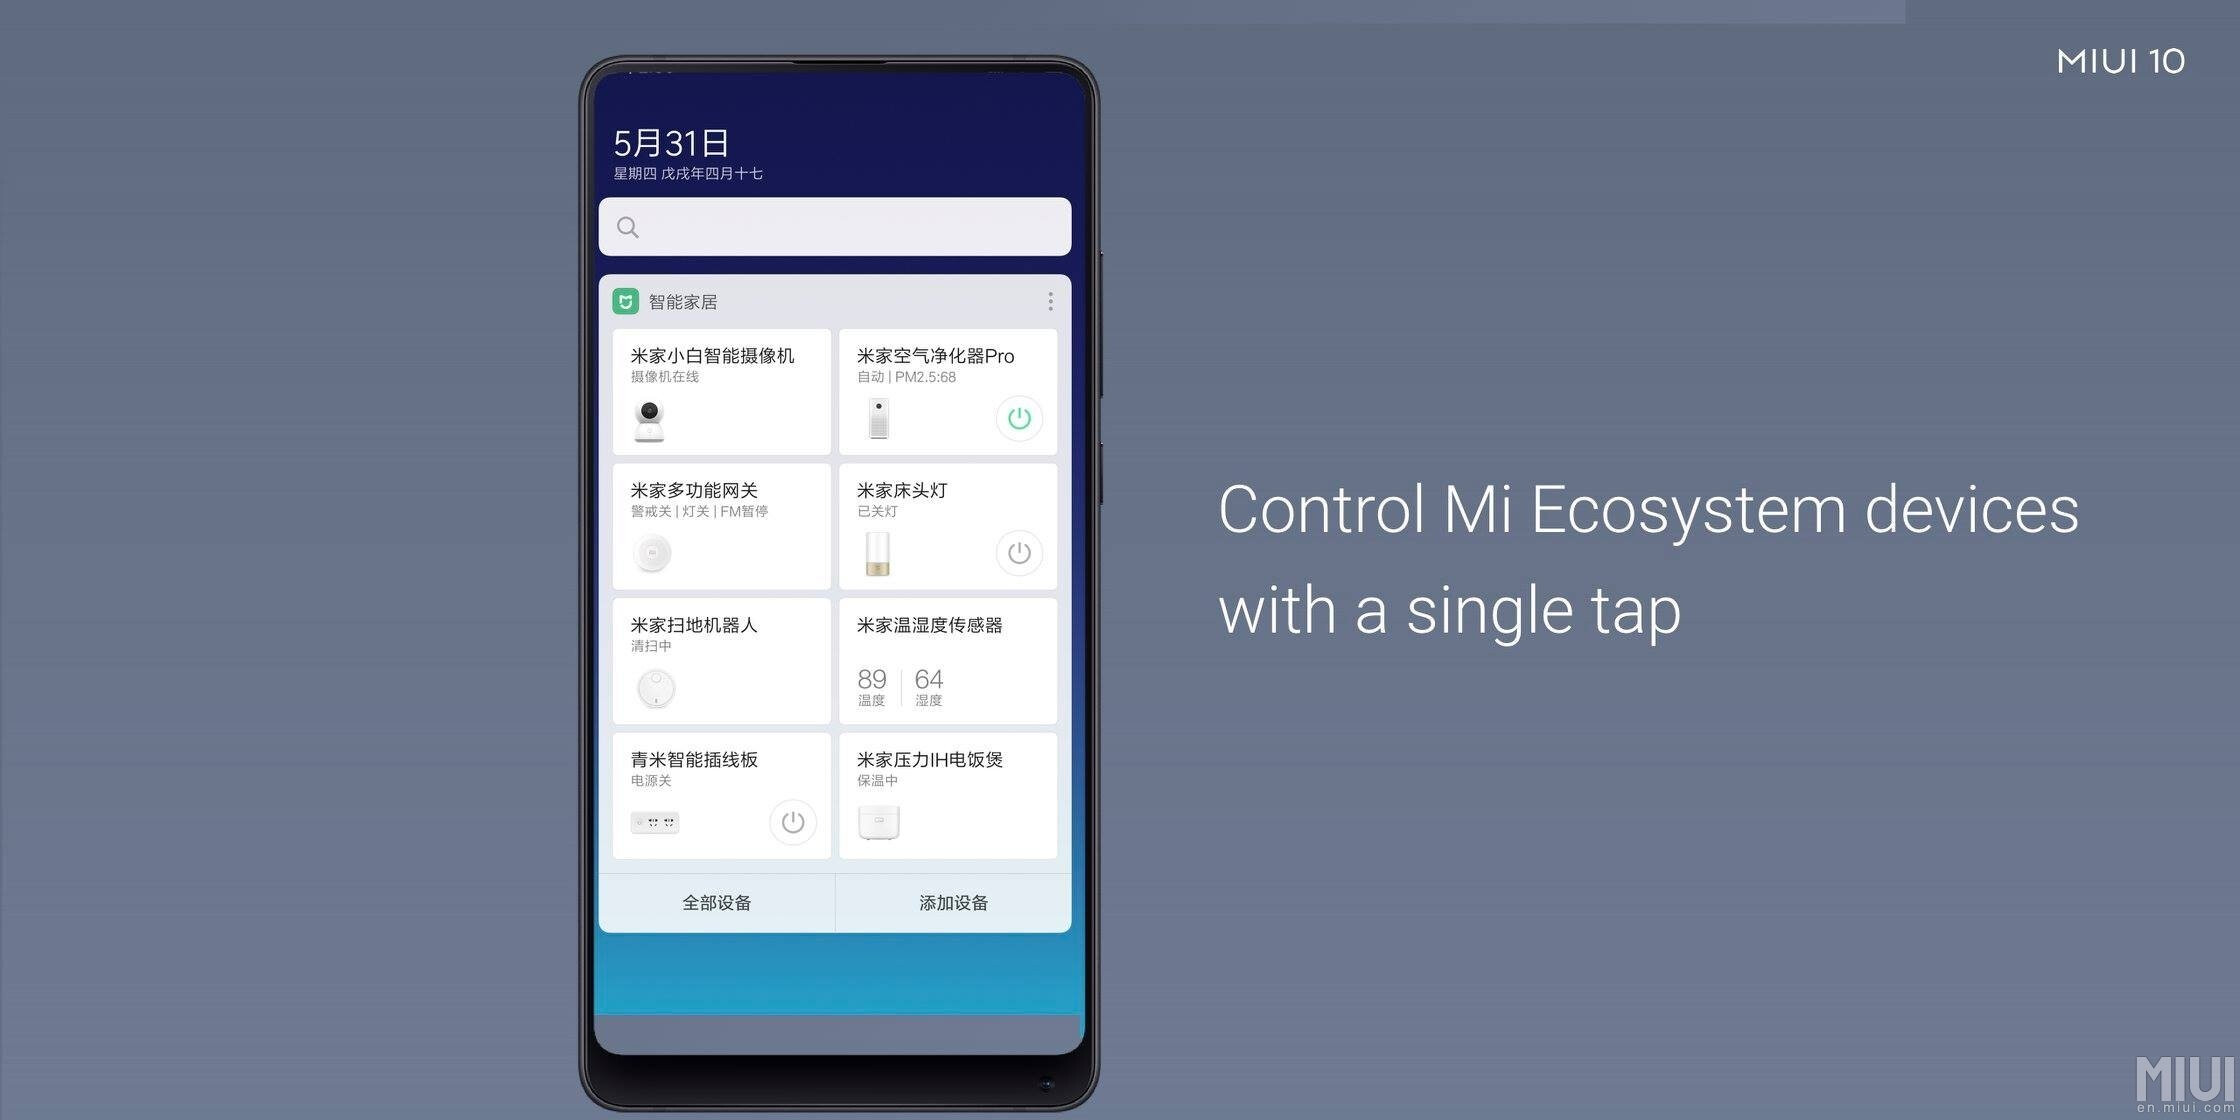 MIUI 10 unveiled: AI features and dedicated portrait mode